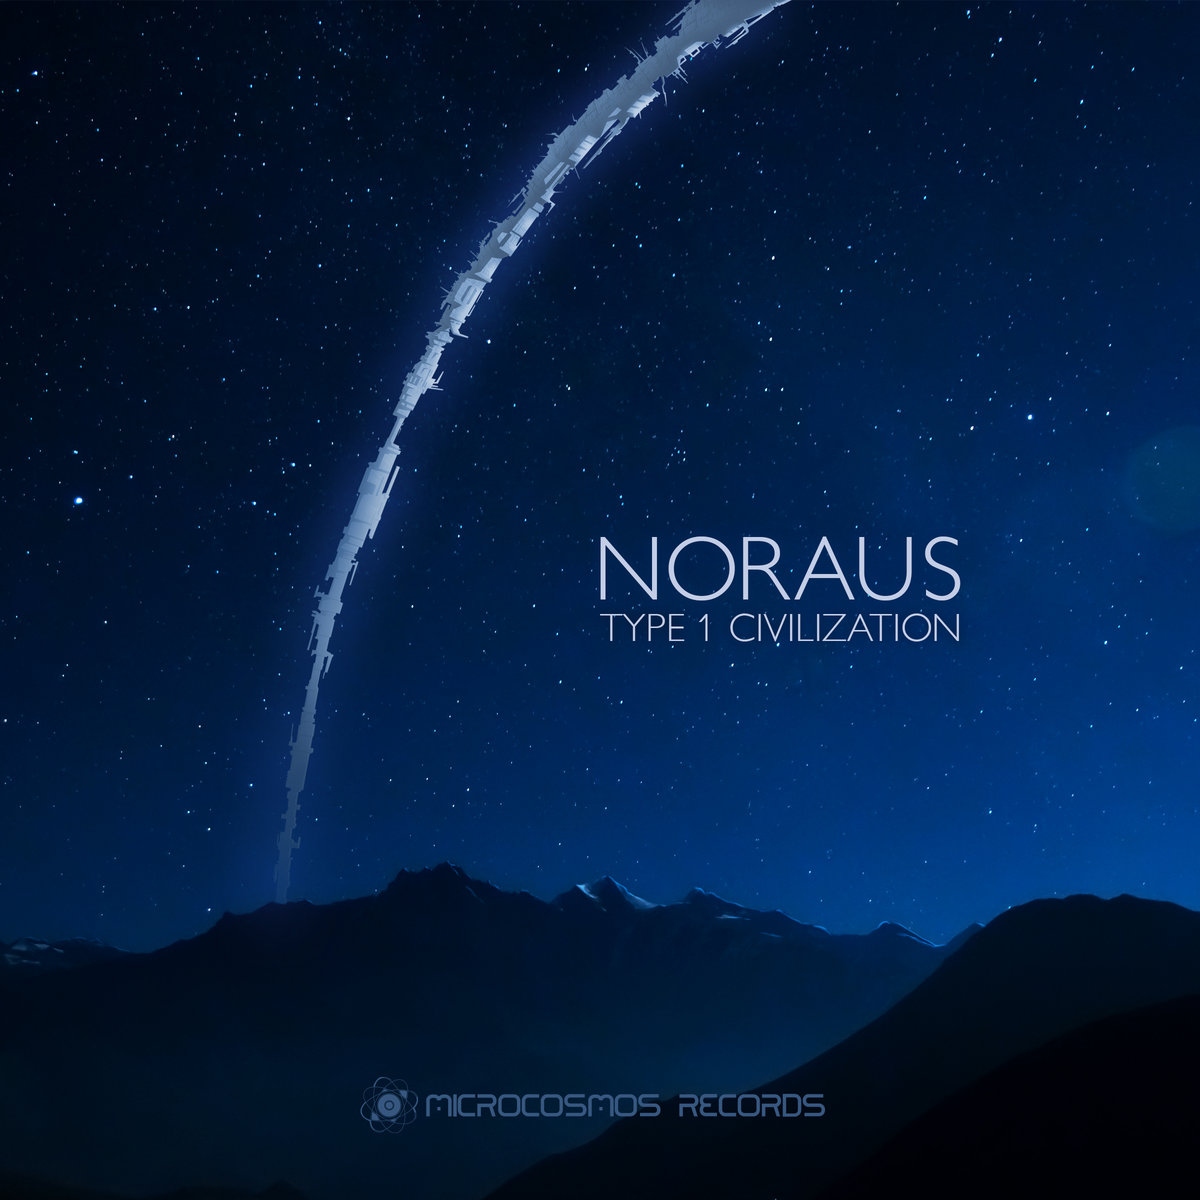 Noraus - Fuse @ 'Type 1 Civilization' album (ambient, chill-out)